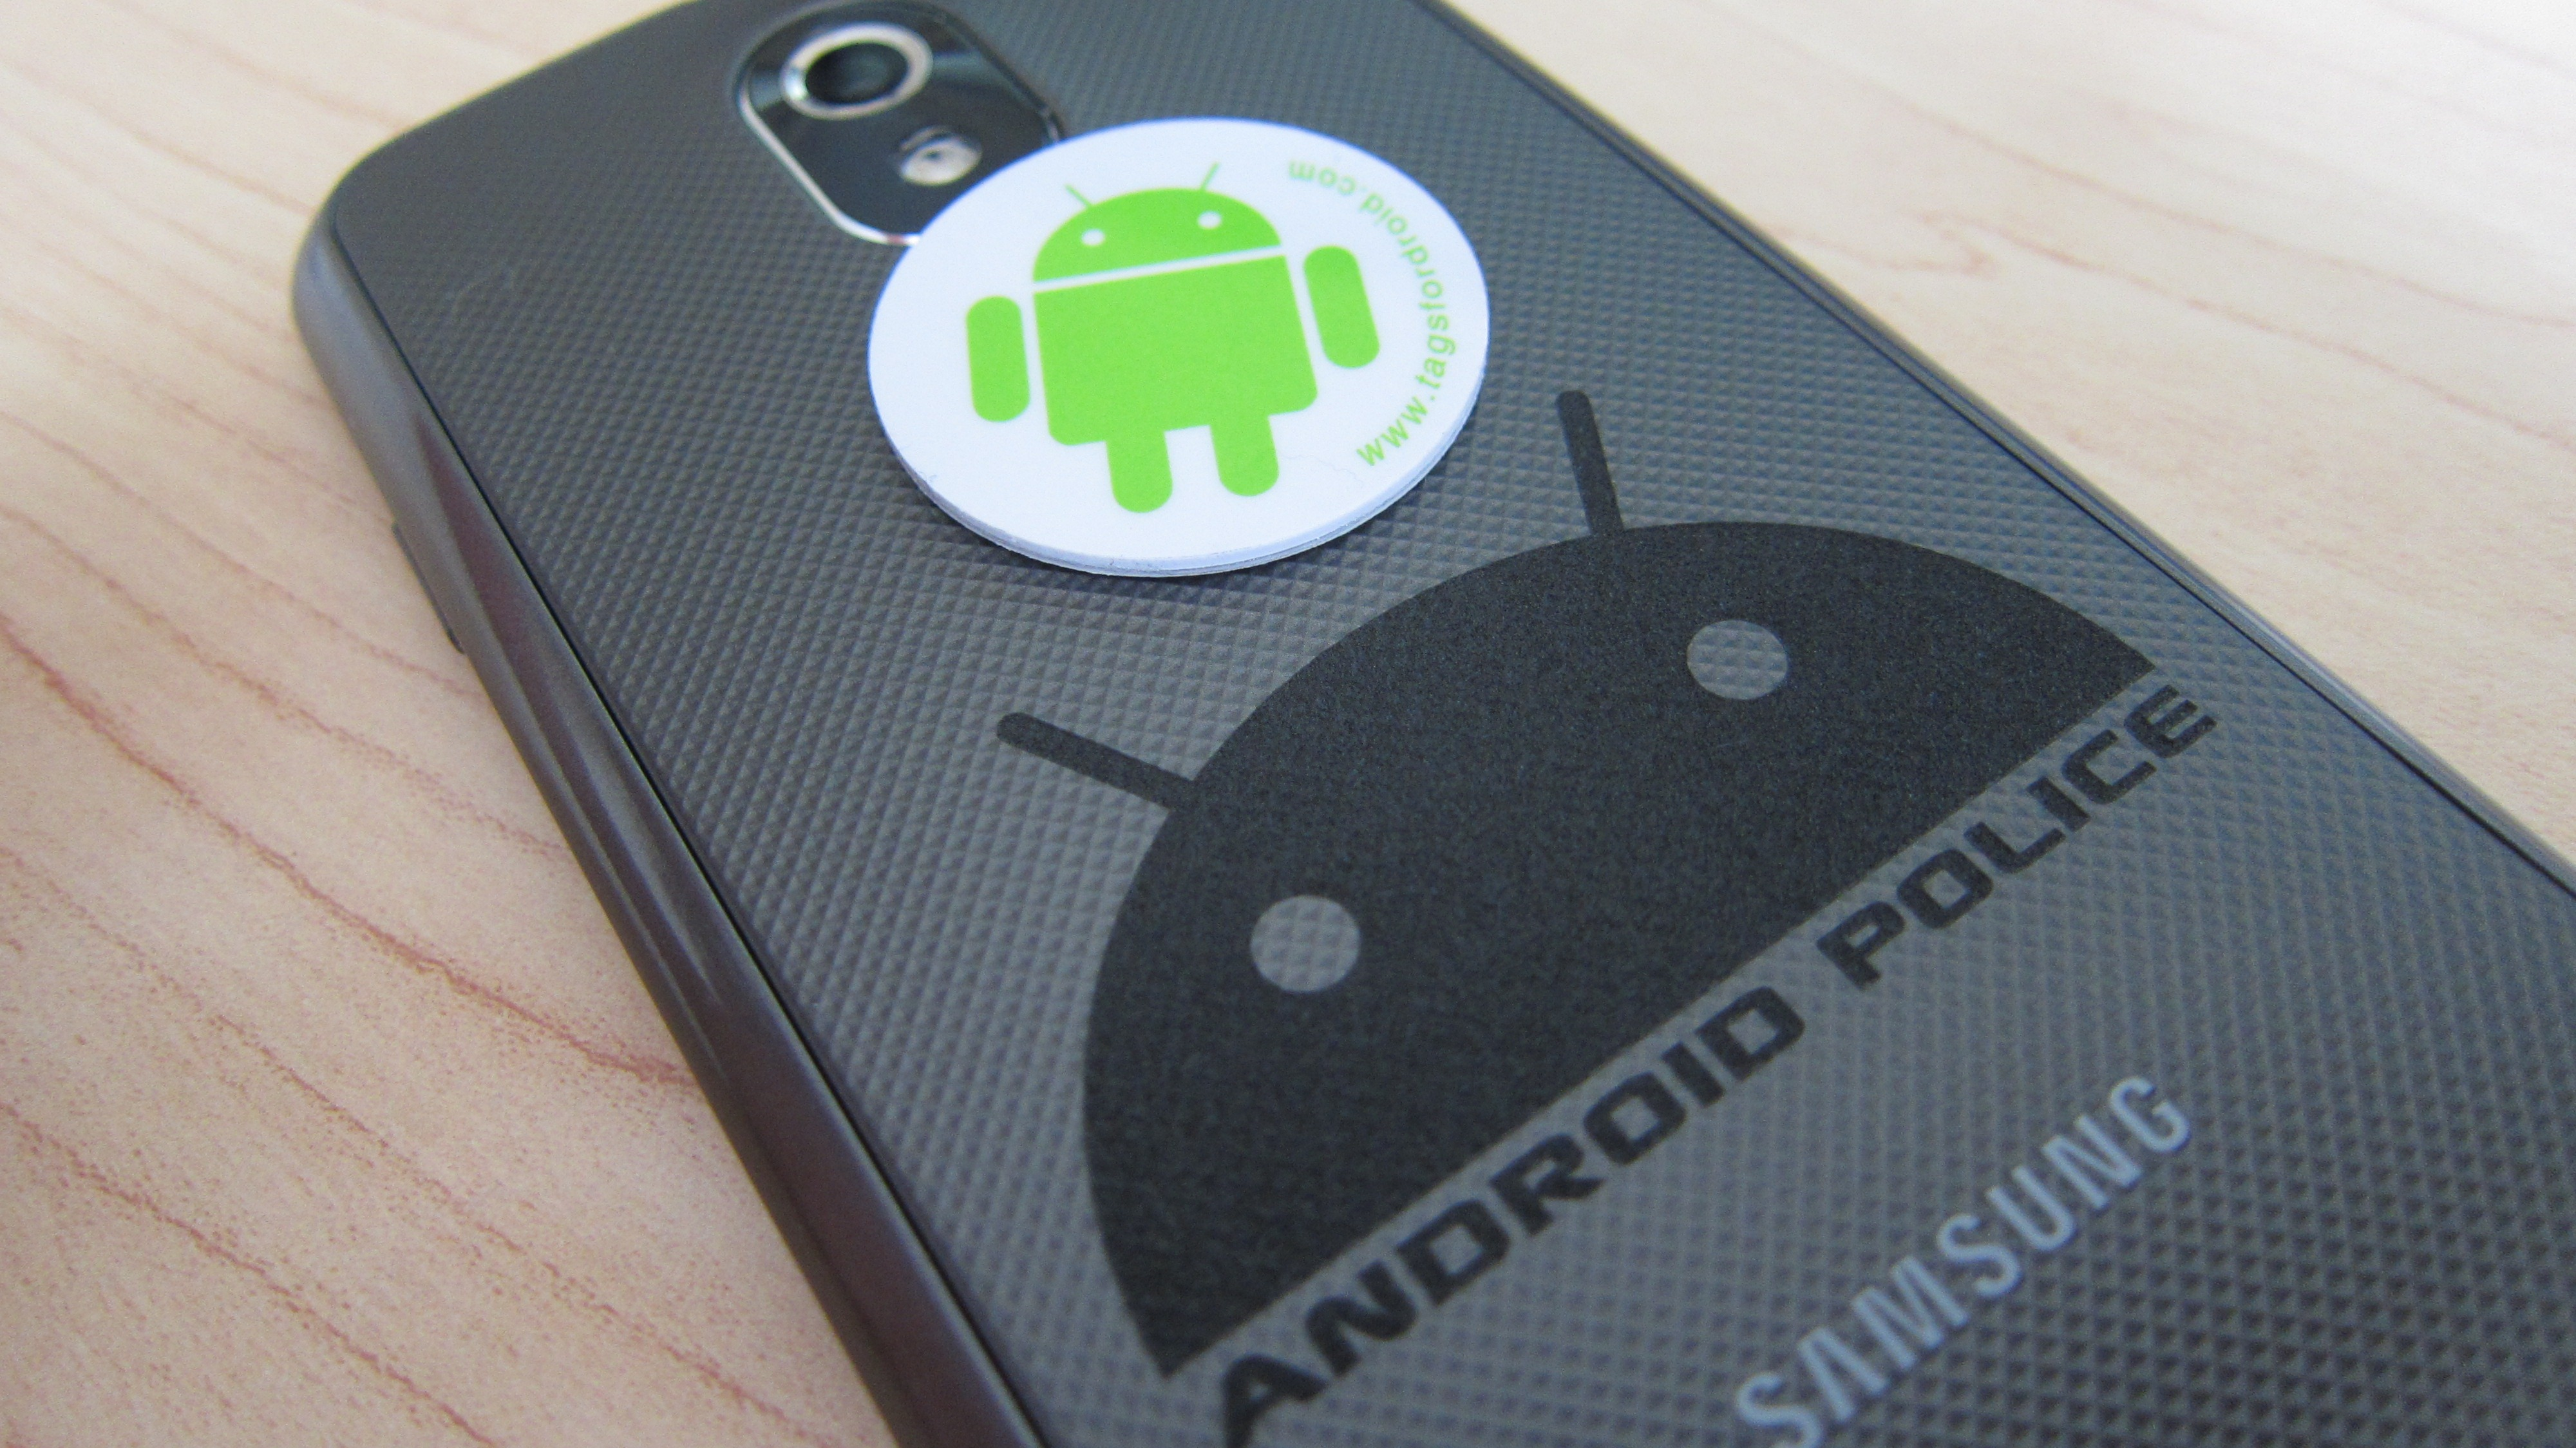 Fun With NFC: Automating Simple Tasks With NFC Tags And An